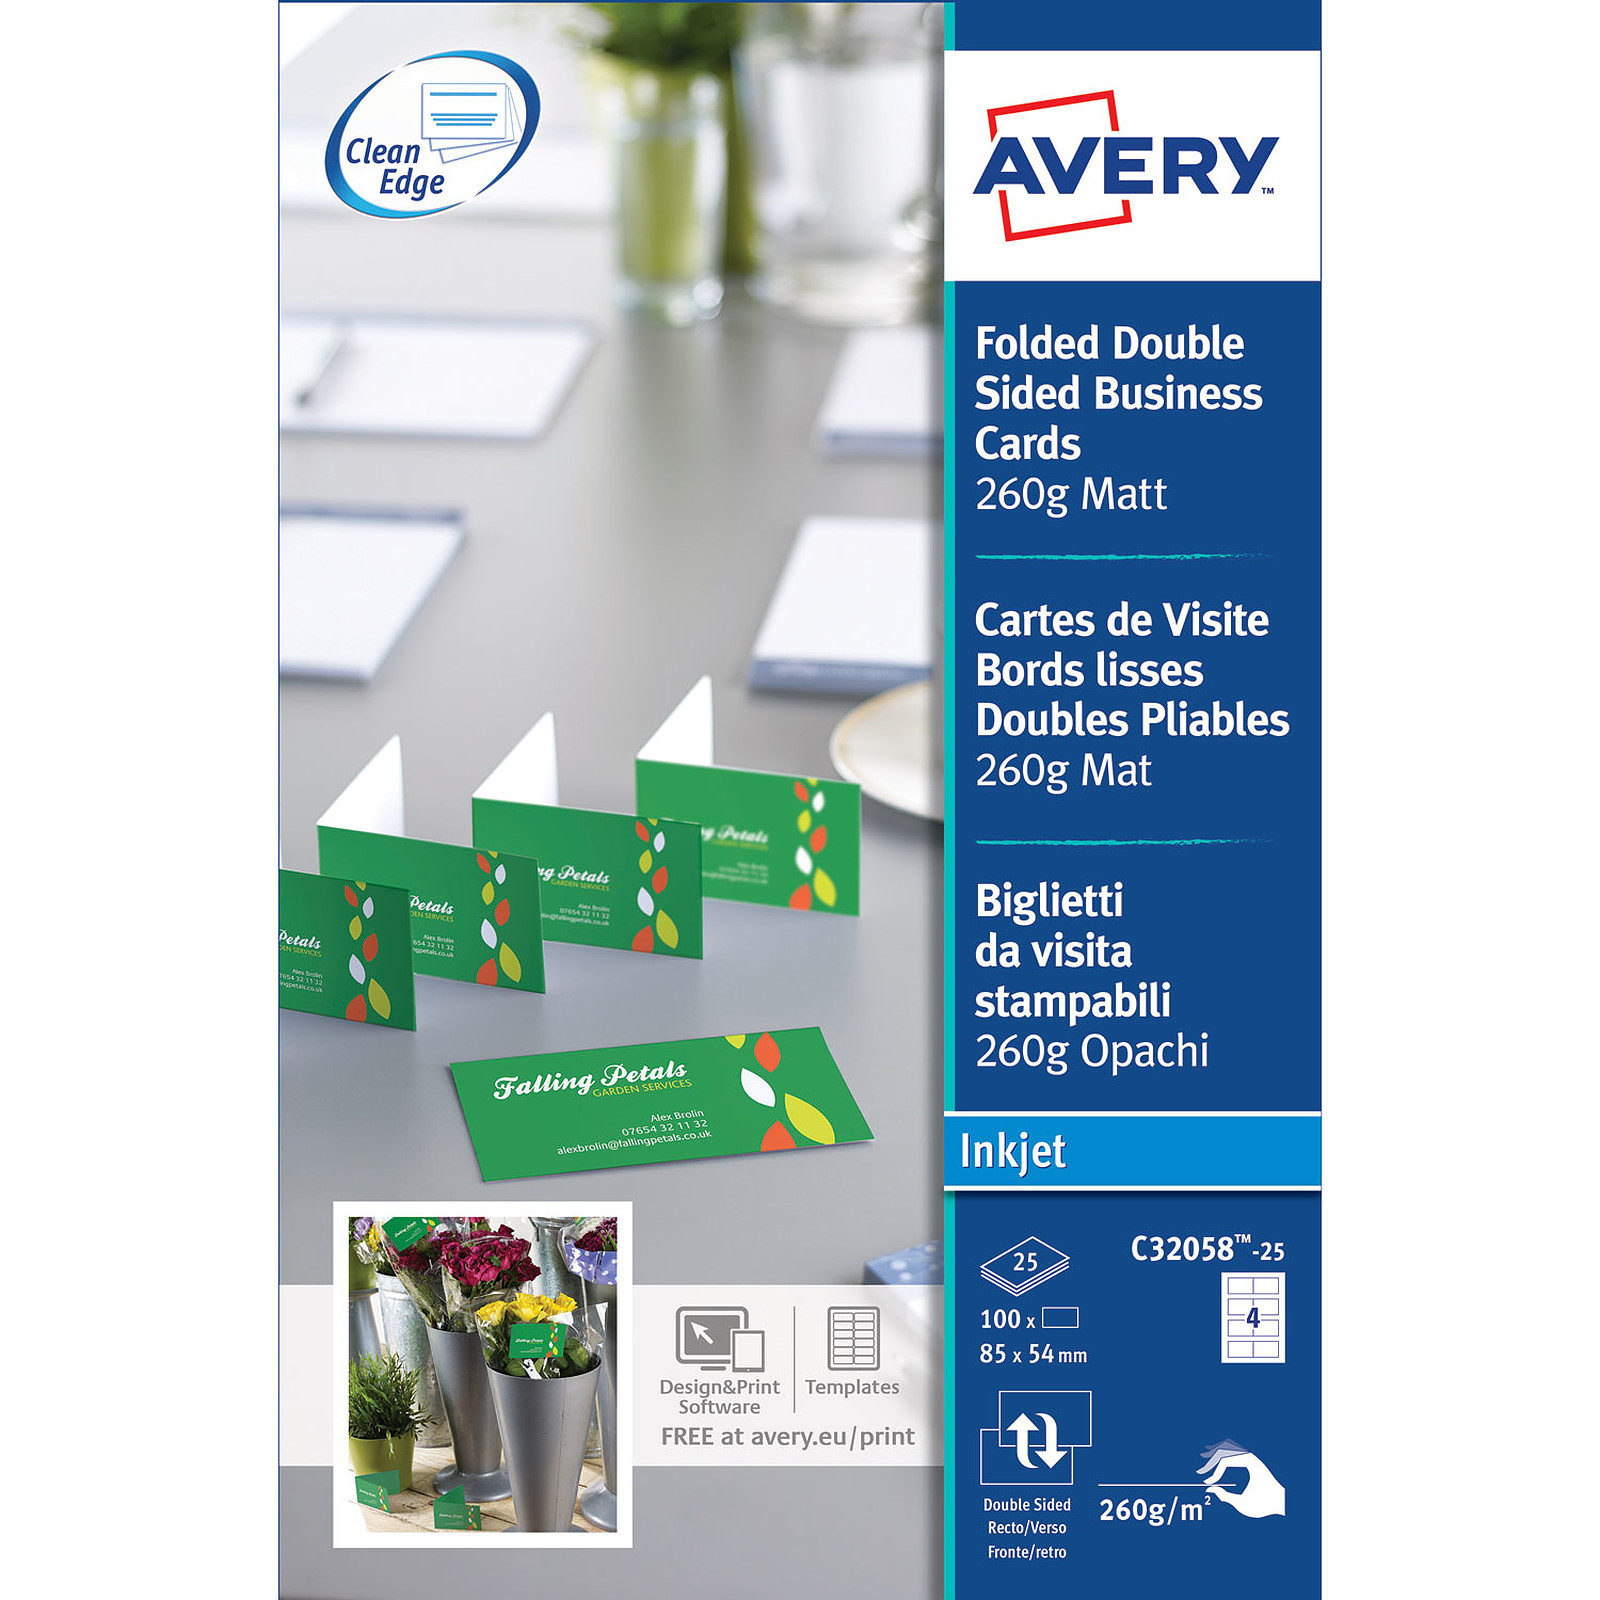 Avery QuickClean 100 Cartes De Visite 85 X 54 Mm Doubles Porte Carte